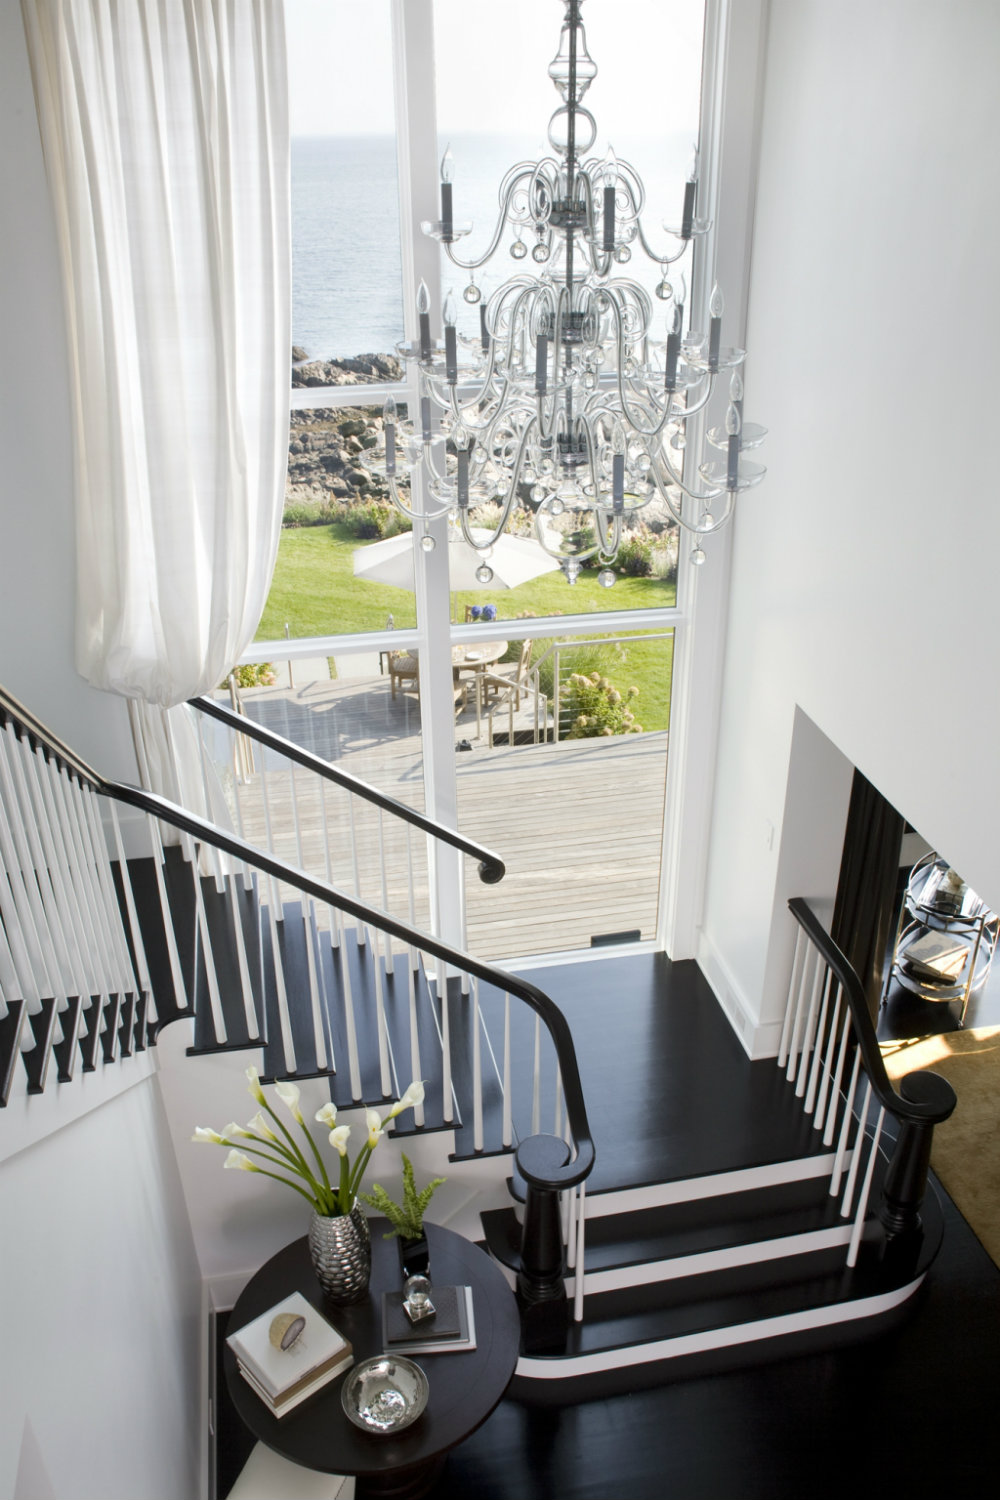 6 Luxurious Stairwell Designs You'll Love 05 Stairwell Designs 6 Luxurious Stairwell Designs You'll Love 6 Luxurious Stairwell Designs Youll Love 05